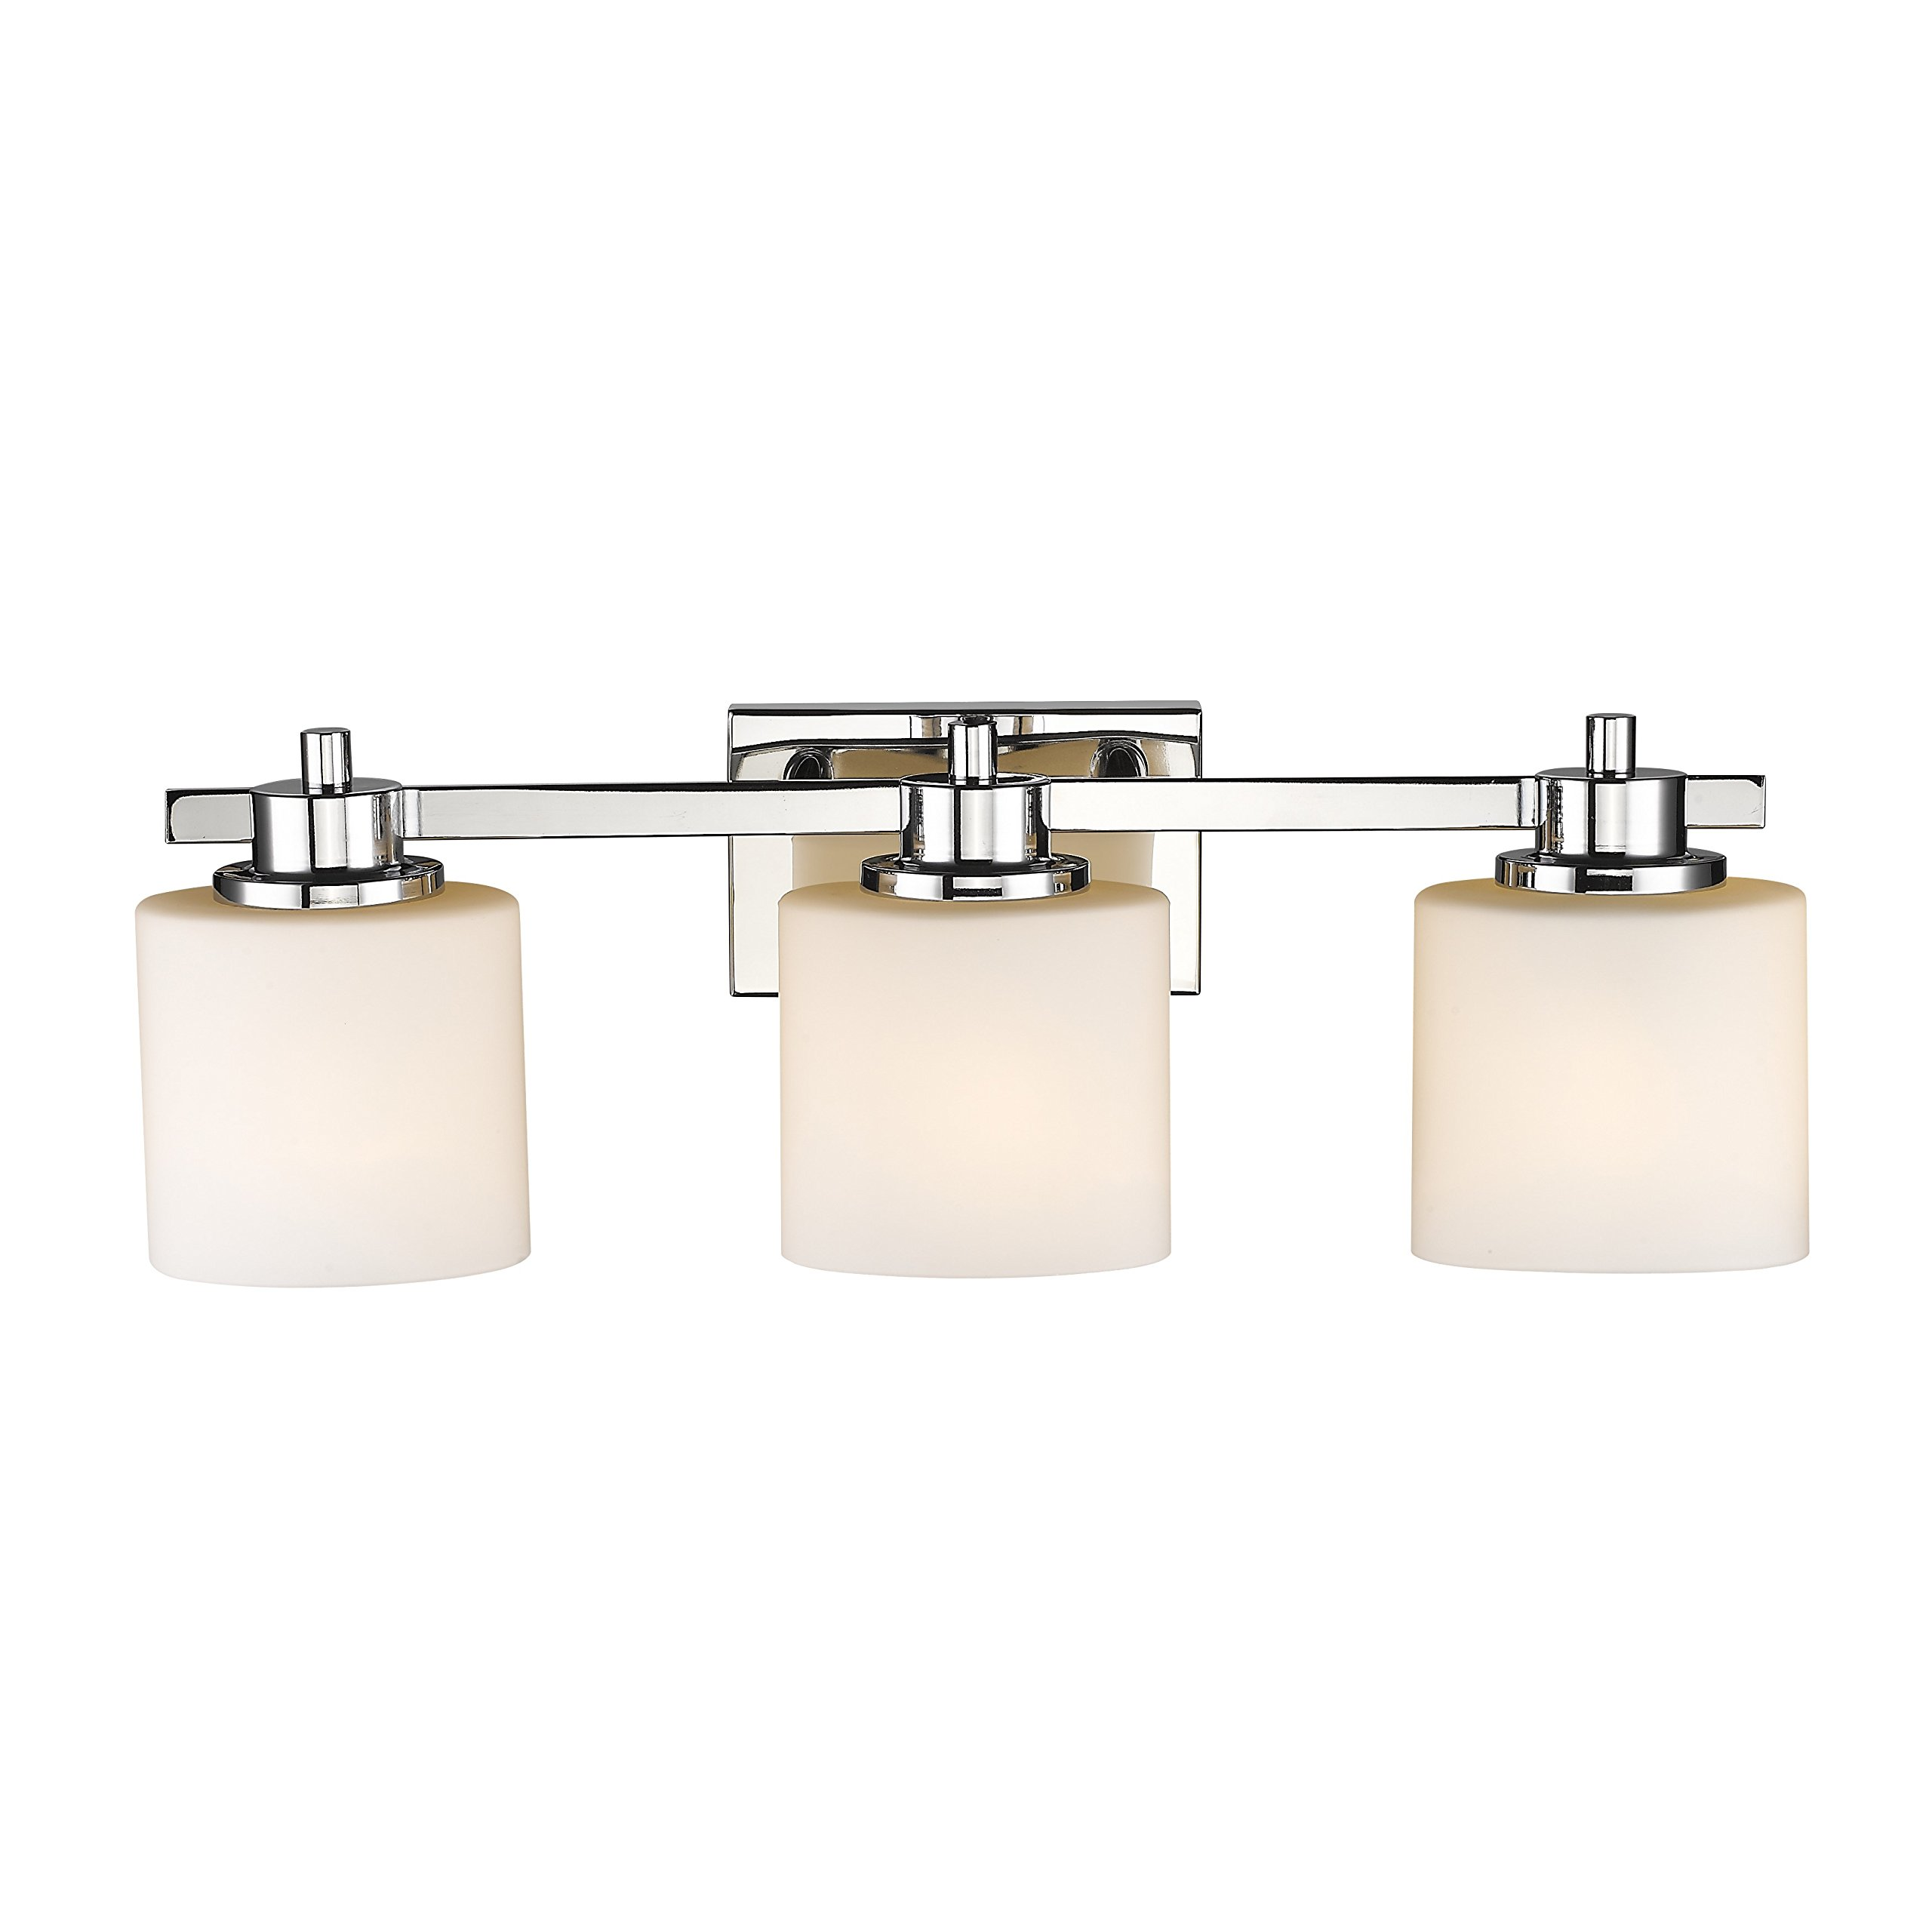 Chloe Lighting CH821036CM24-BL3 Contemporary 3 Light Chrome Finish Bath Vanity Wall Fixture White Alabaster Glass 24'' Wide by Chloe Lighting (Image #4)